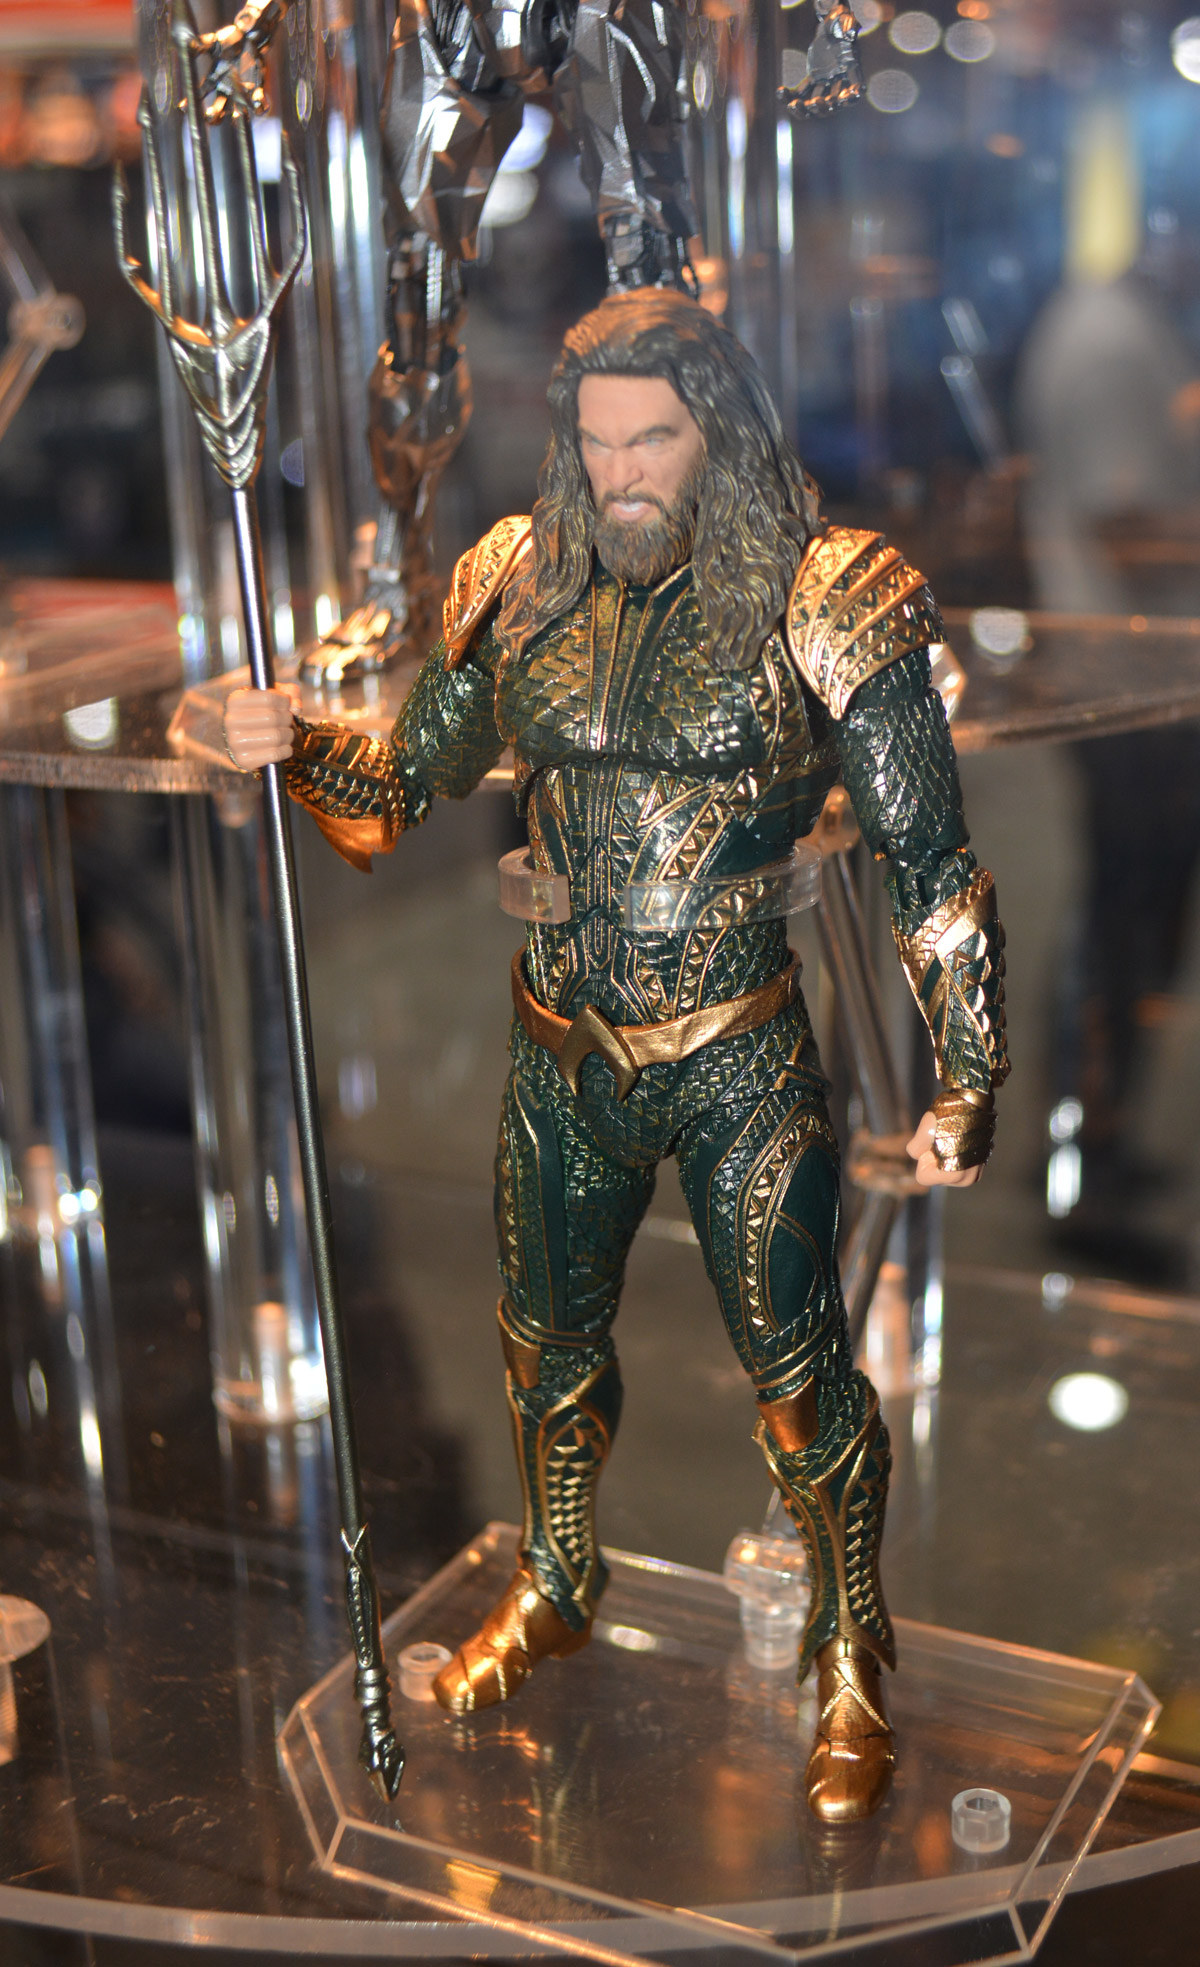 justice league movie mafex figures revealed at sdcc 2017